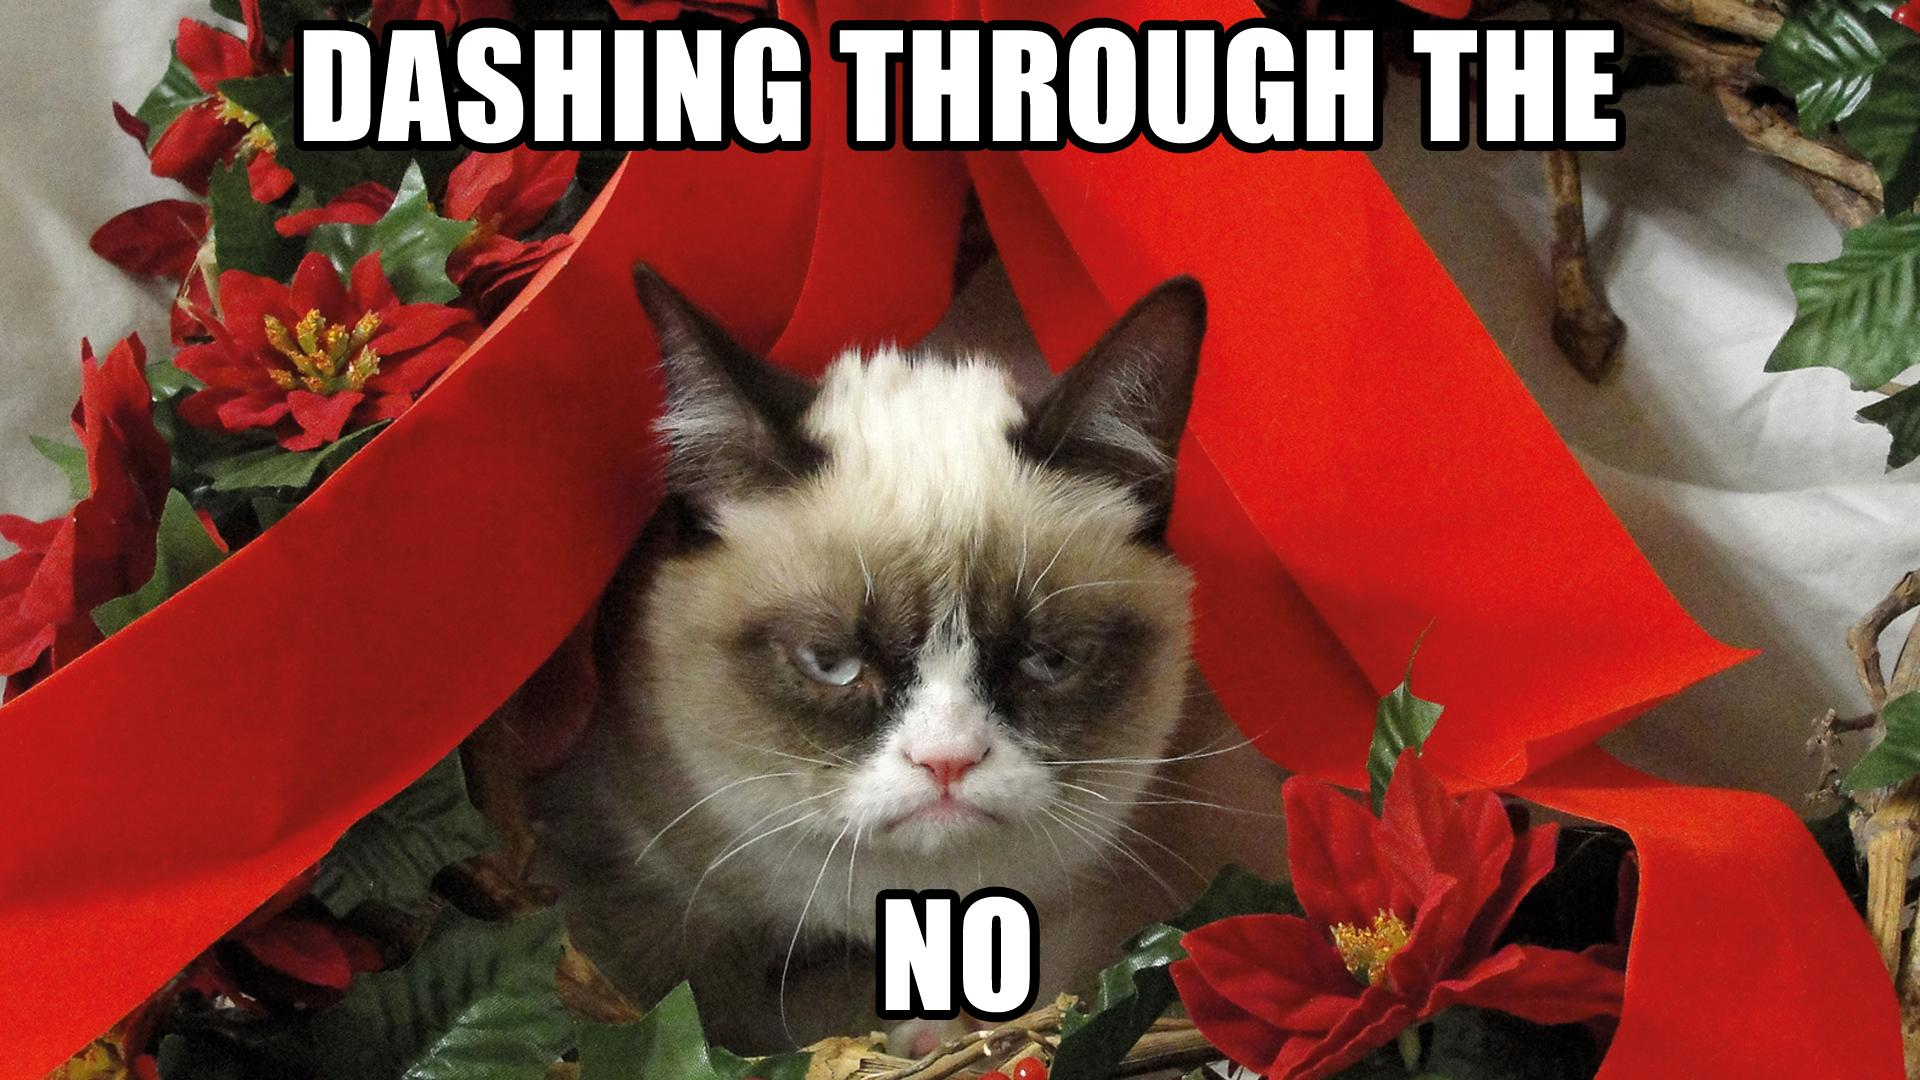 Grumpy Cat Meme Pictures humor funny cats christmas wallpaper 1920x1080